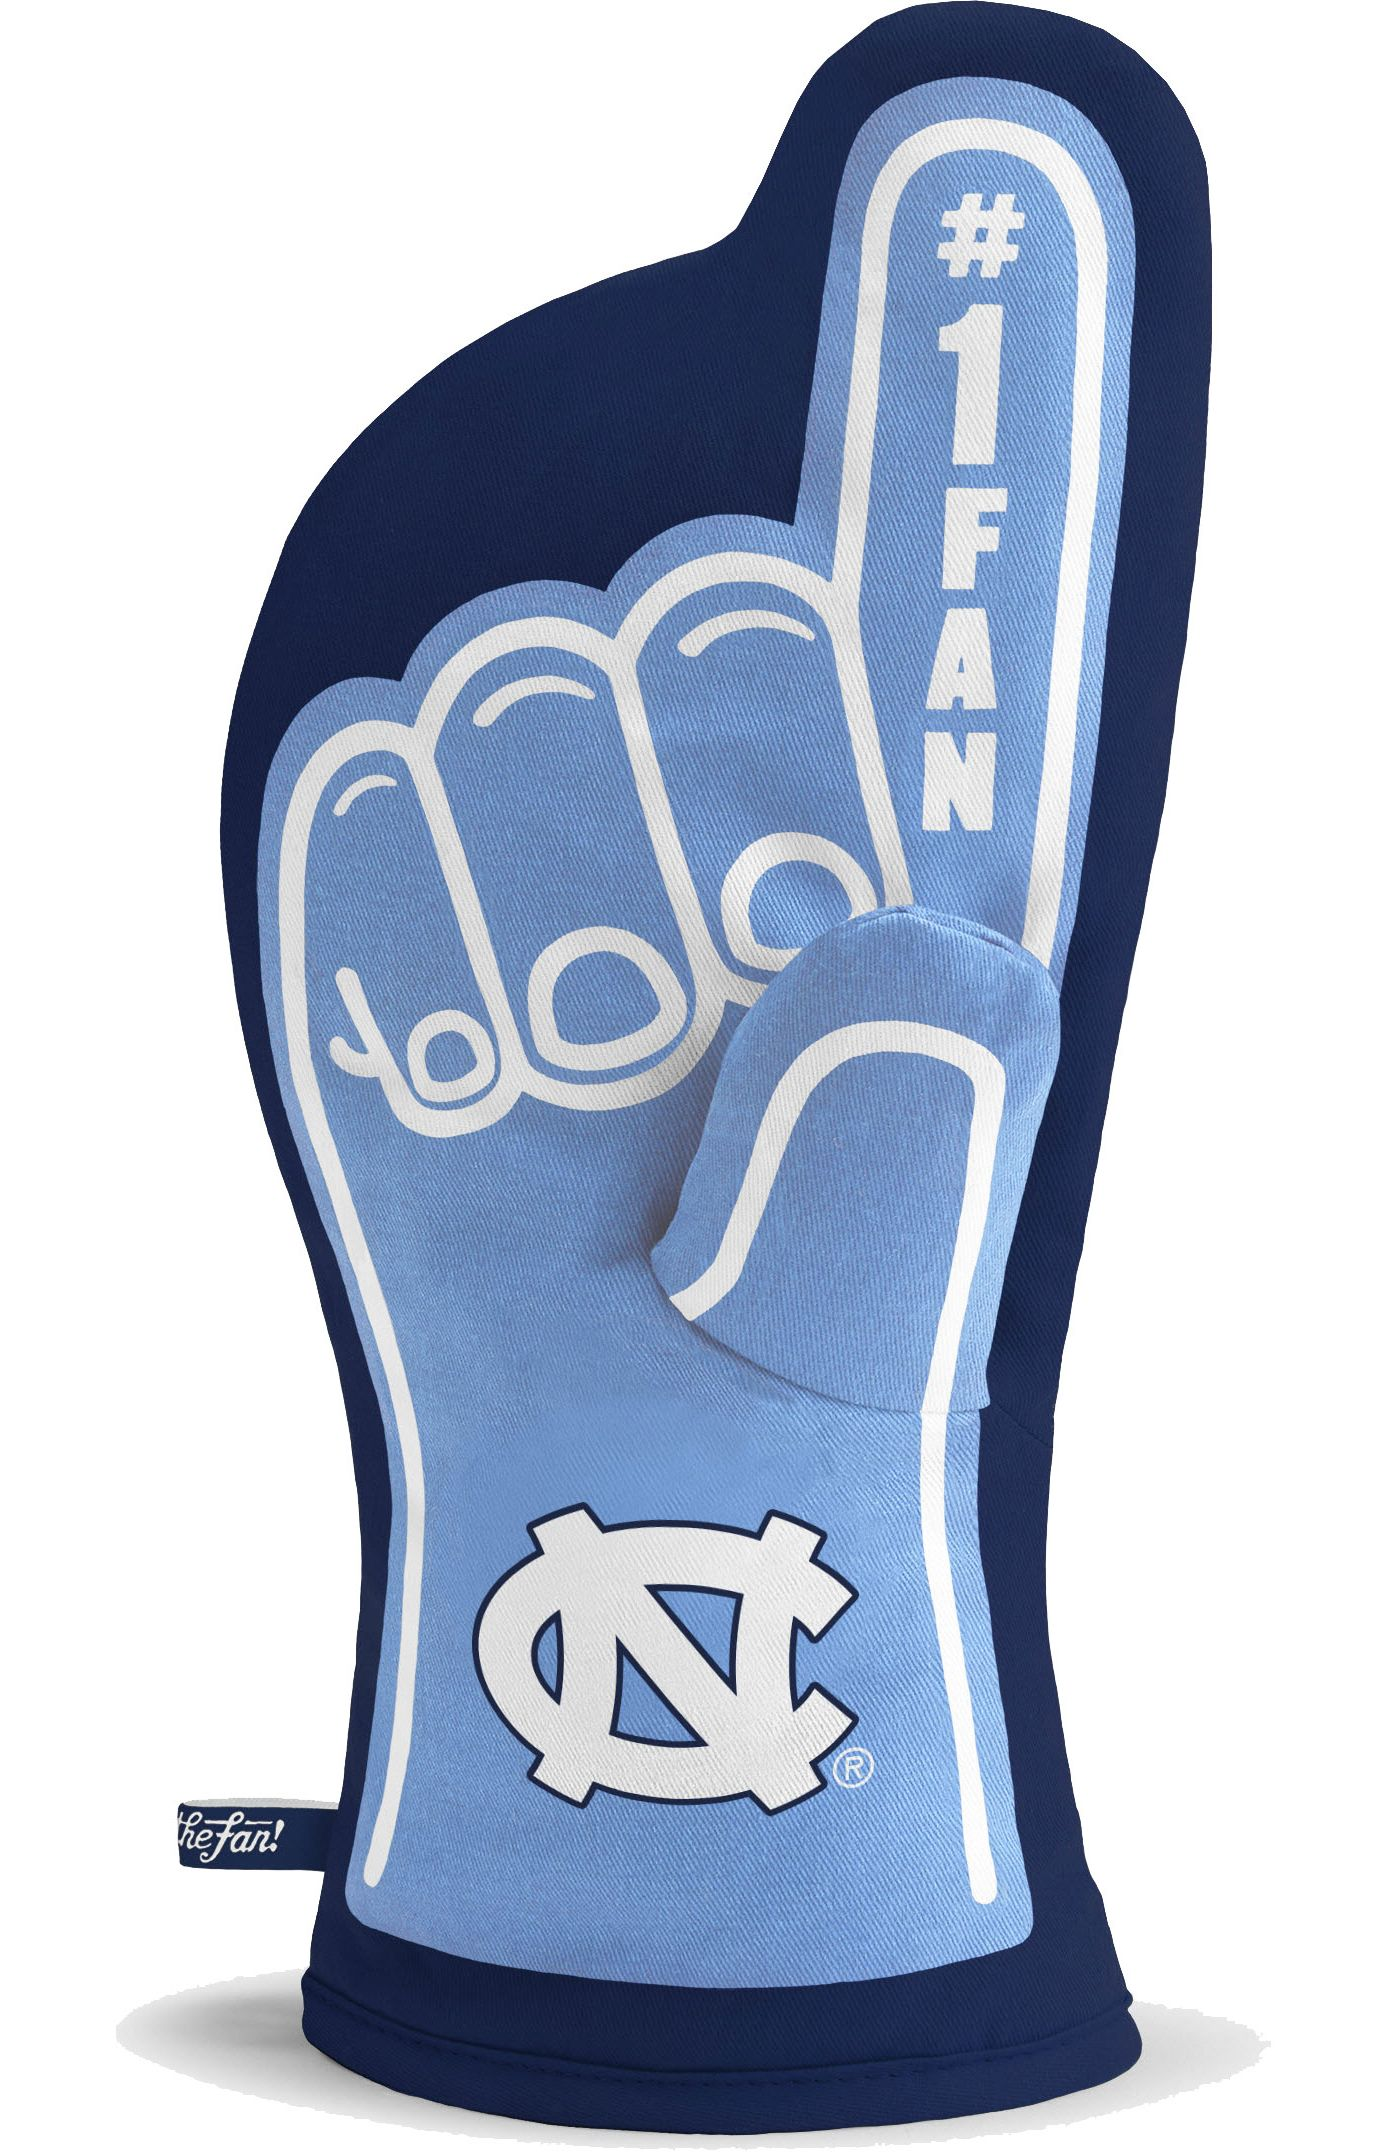 You The Fan North Carolina Tar Heels #1 Oven Mitt